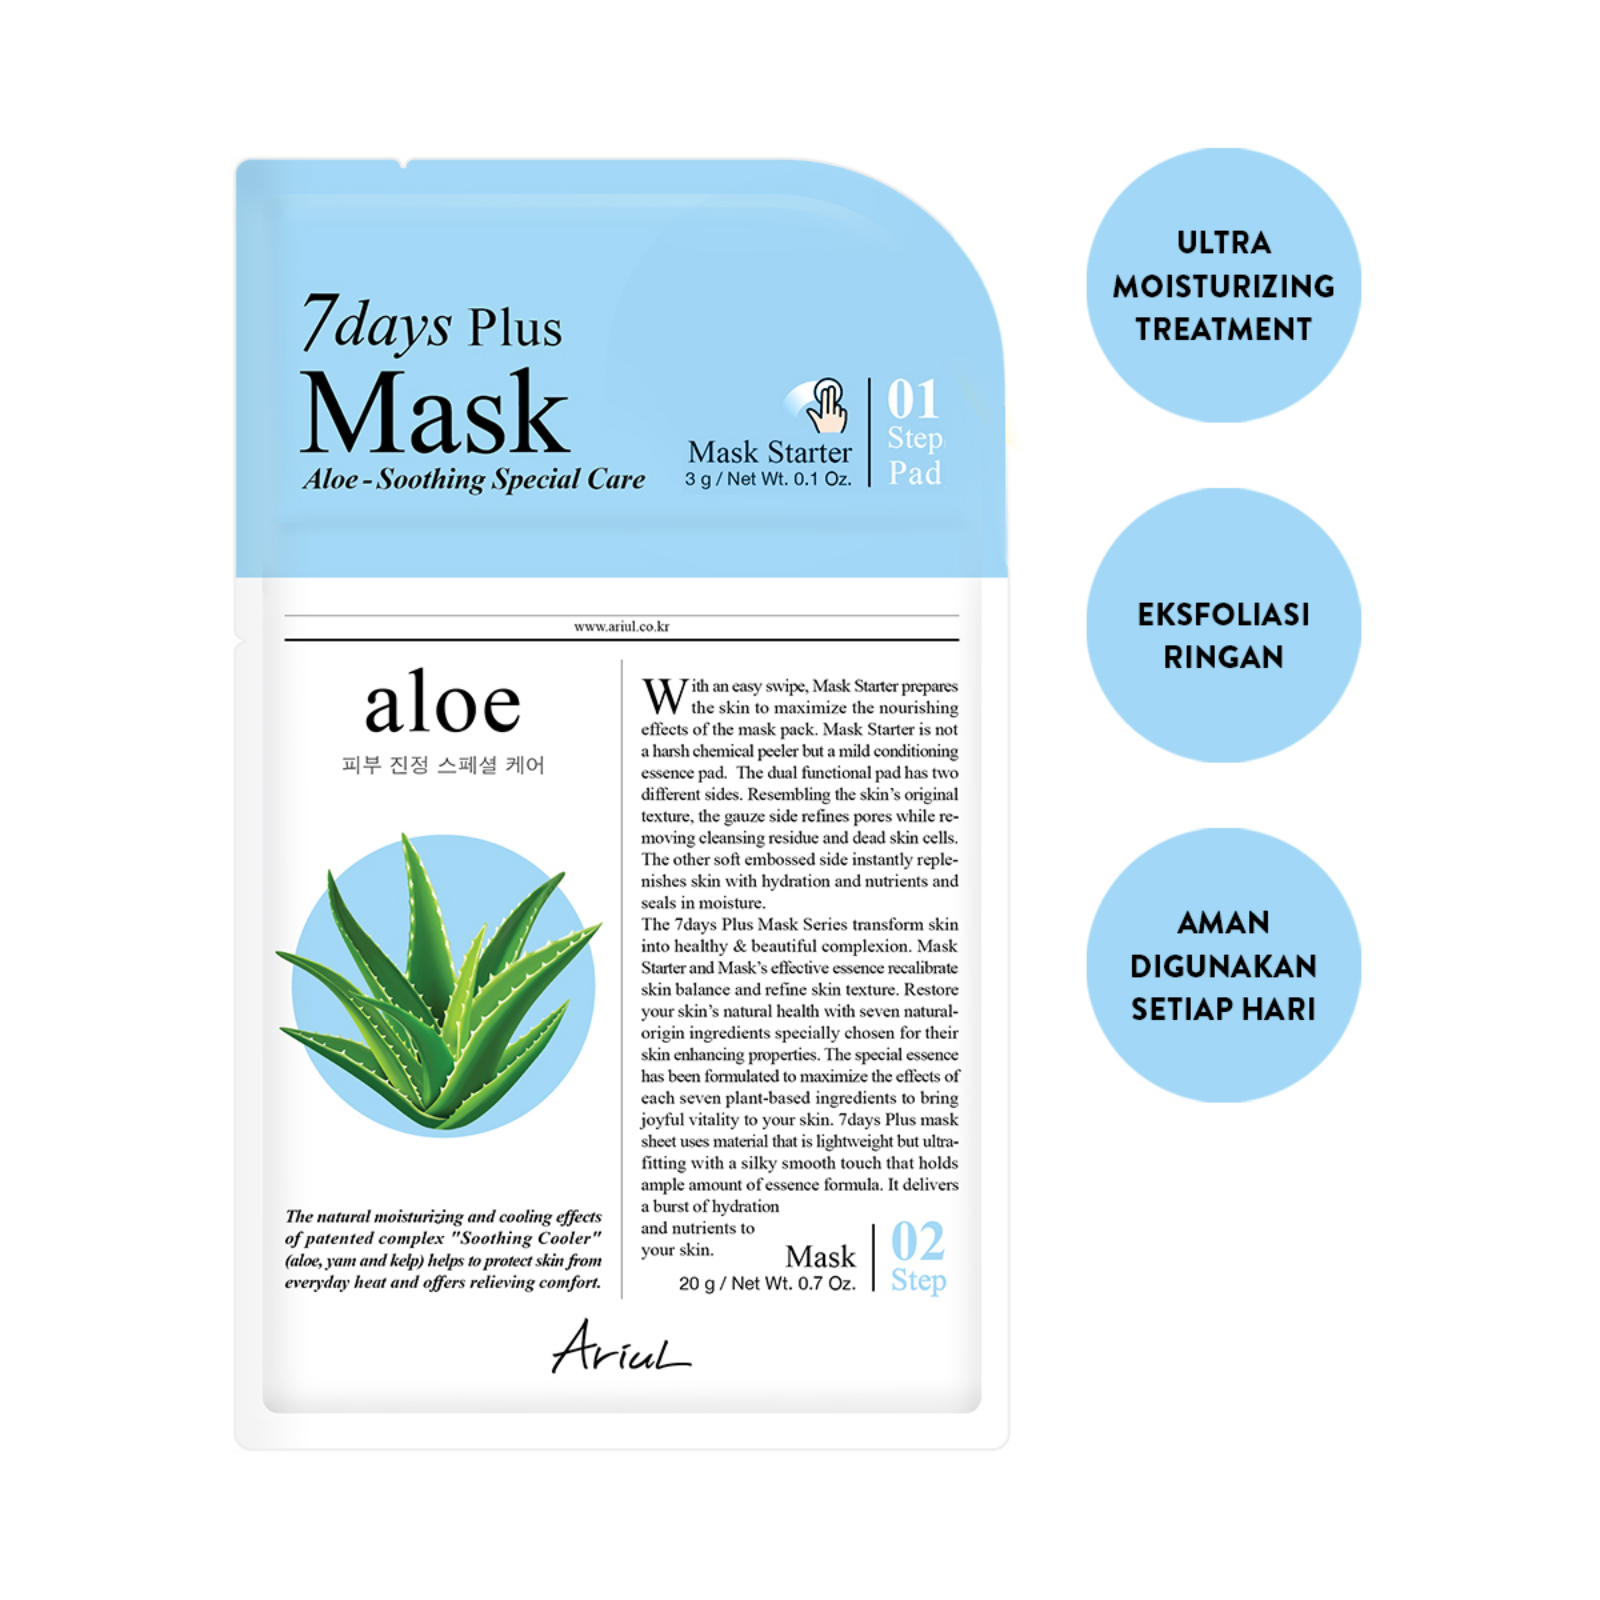 Ariul 7days Plus Mask Aloe Review Soco By Sociolla Situs